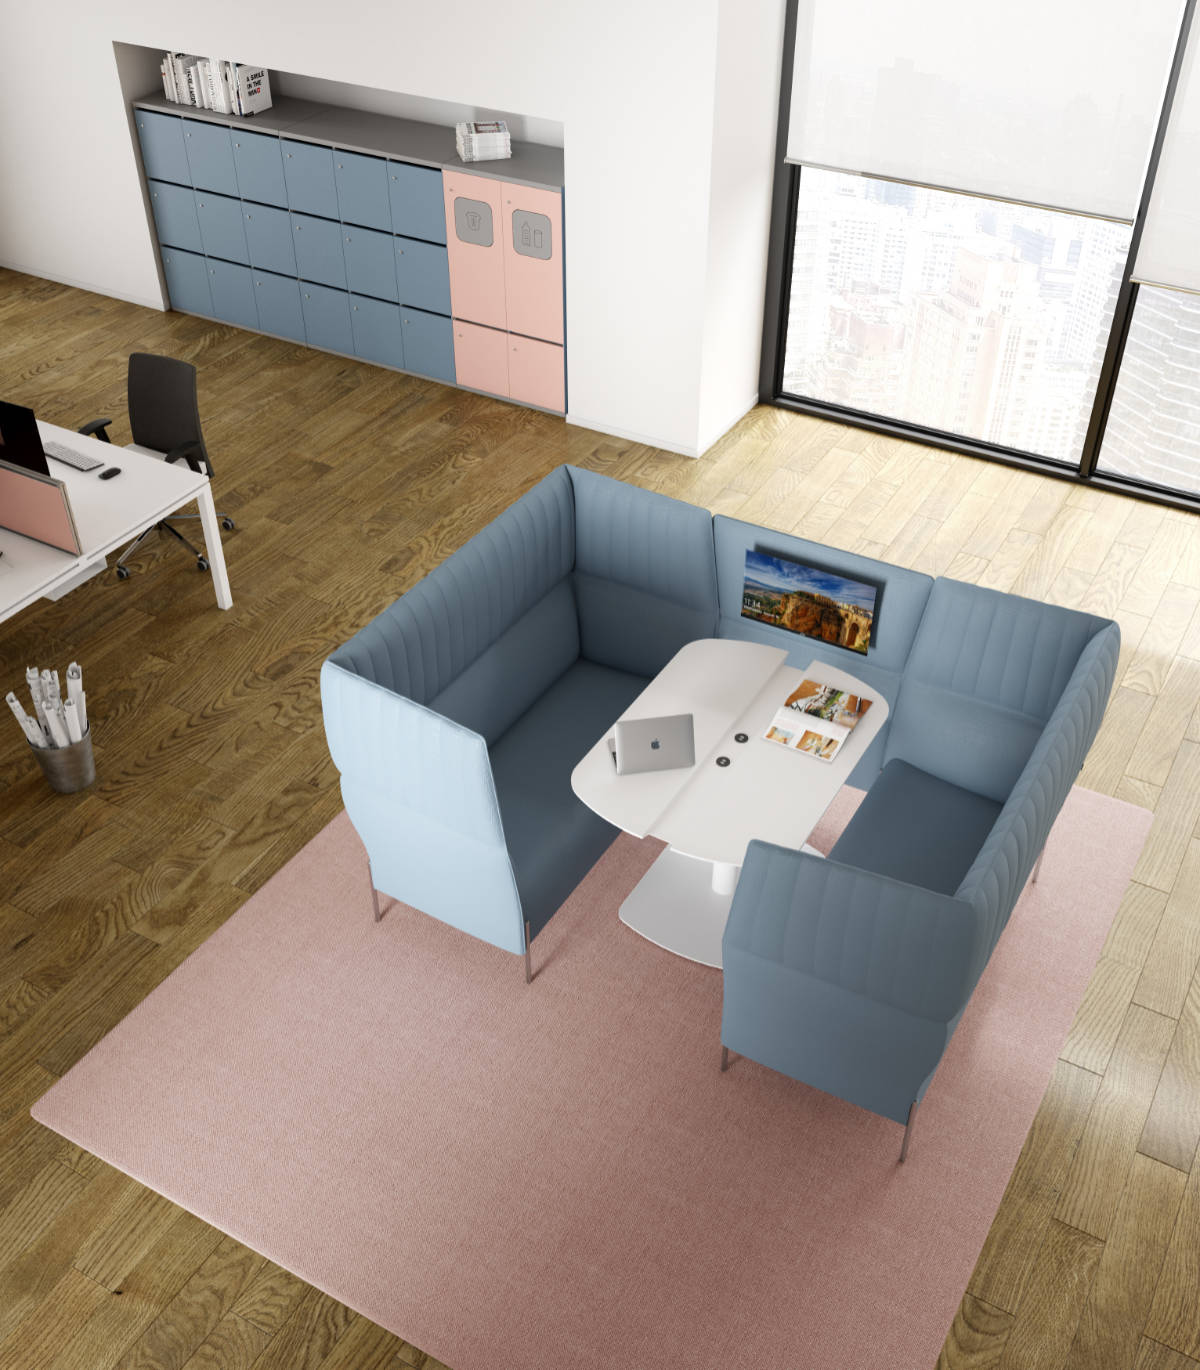 03_Estel_Comfort&Relax_Sofa & Armchair_Dolly Chat